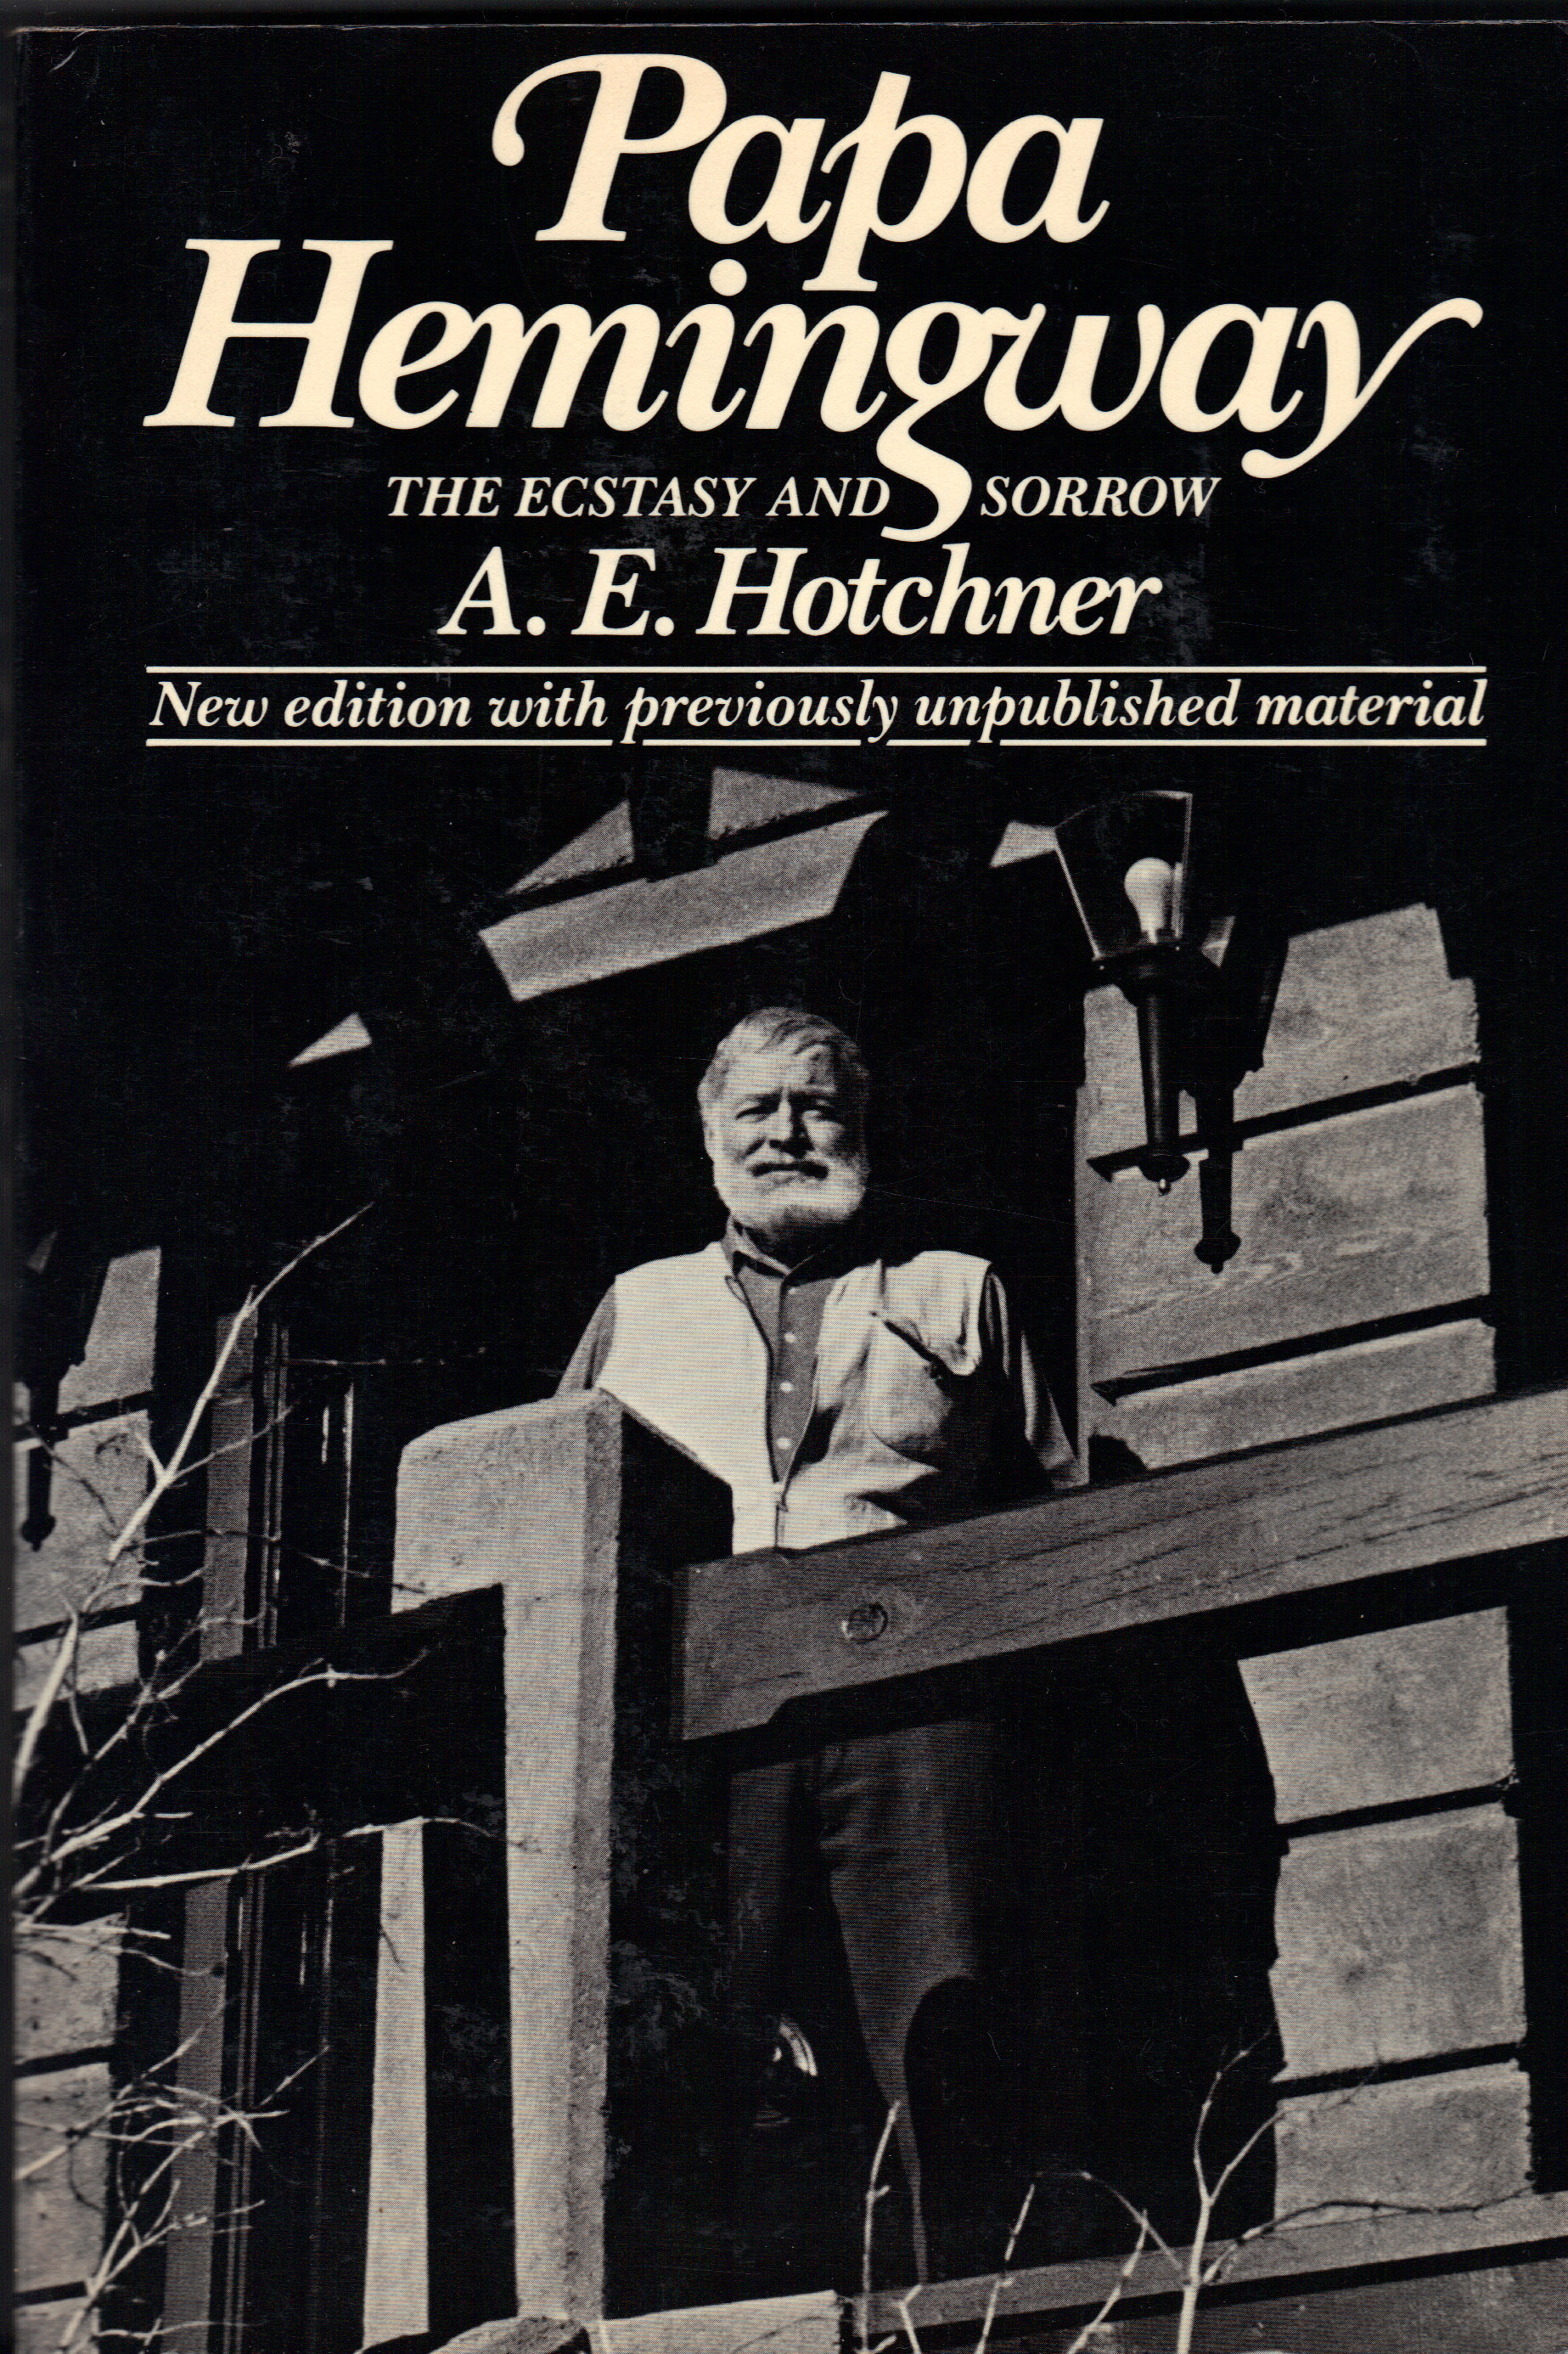 Image for PAPA HEMINGWAY, The Ecstasy and Sorrow